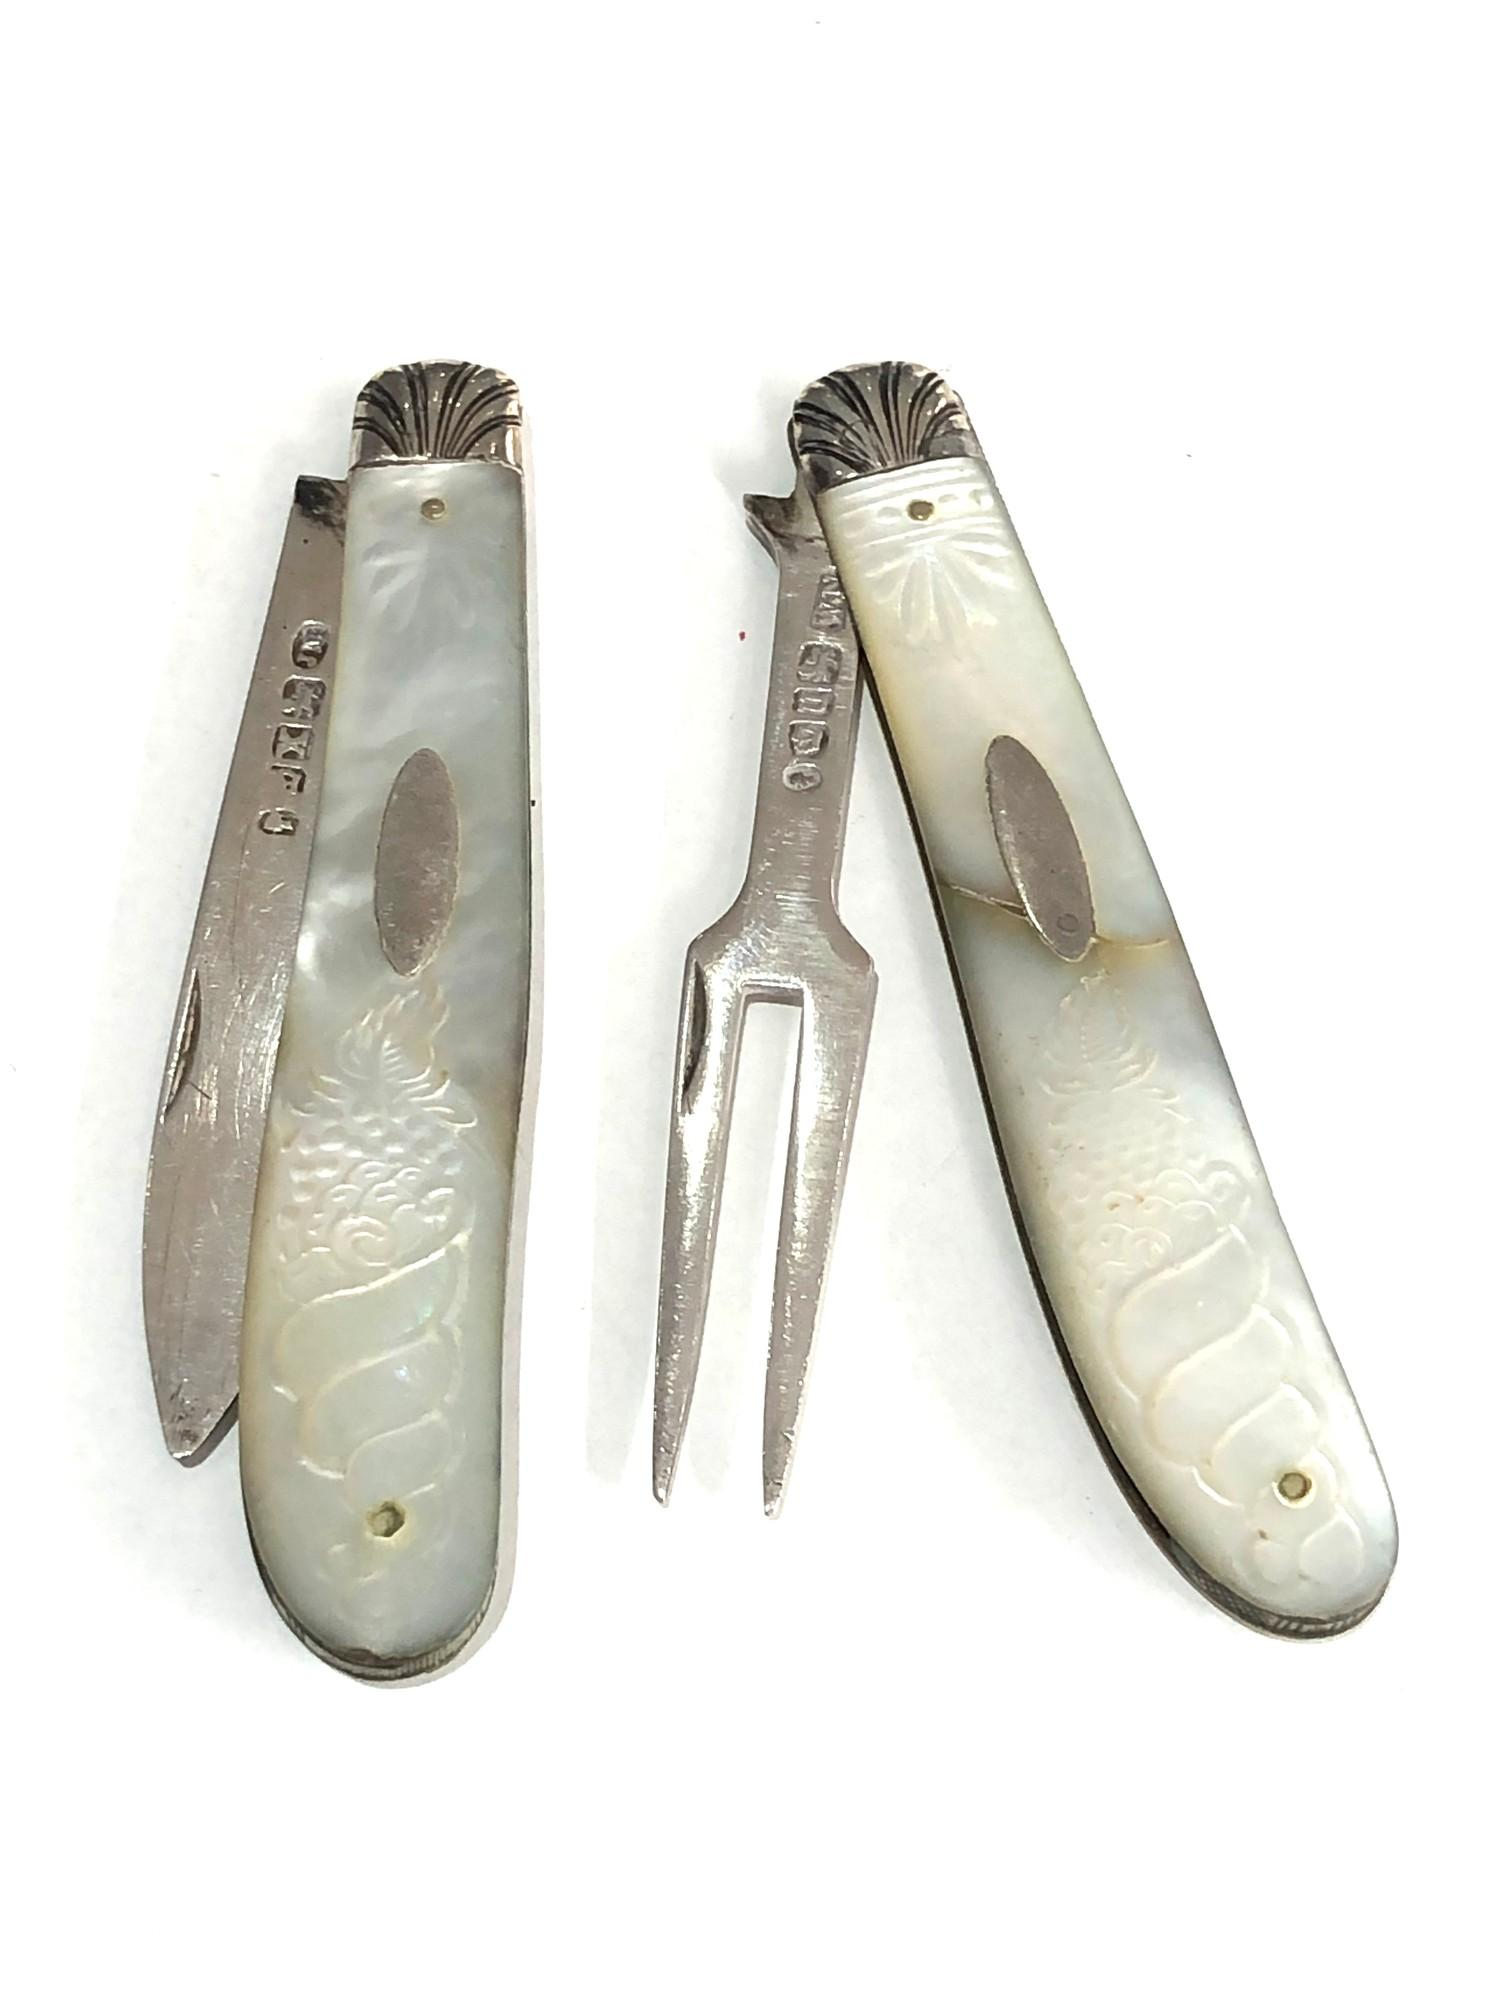 Antique silver & mop knife and fork both have victorian silver hallmarks matching mop handles with - Image 2 of 6